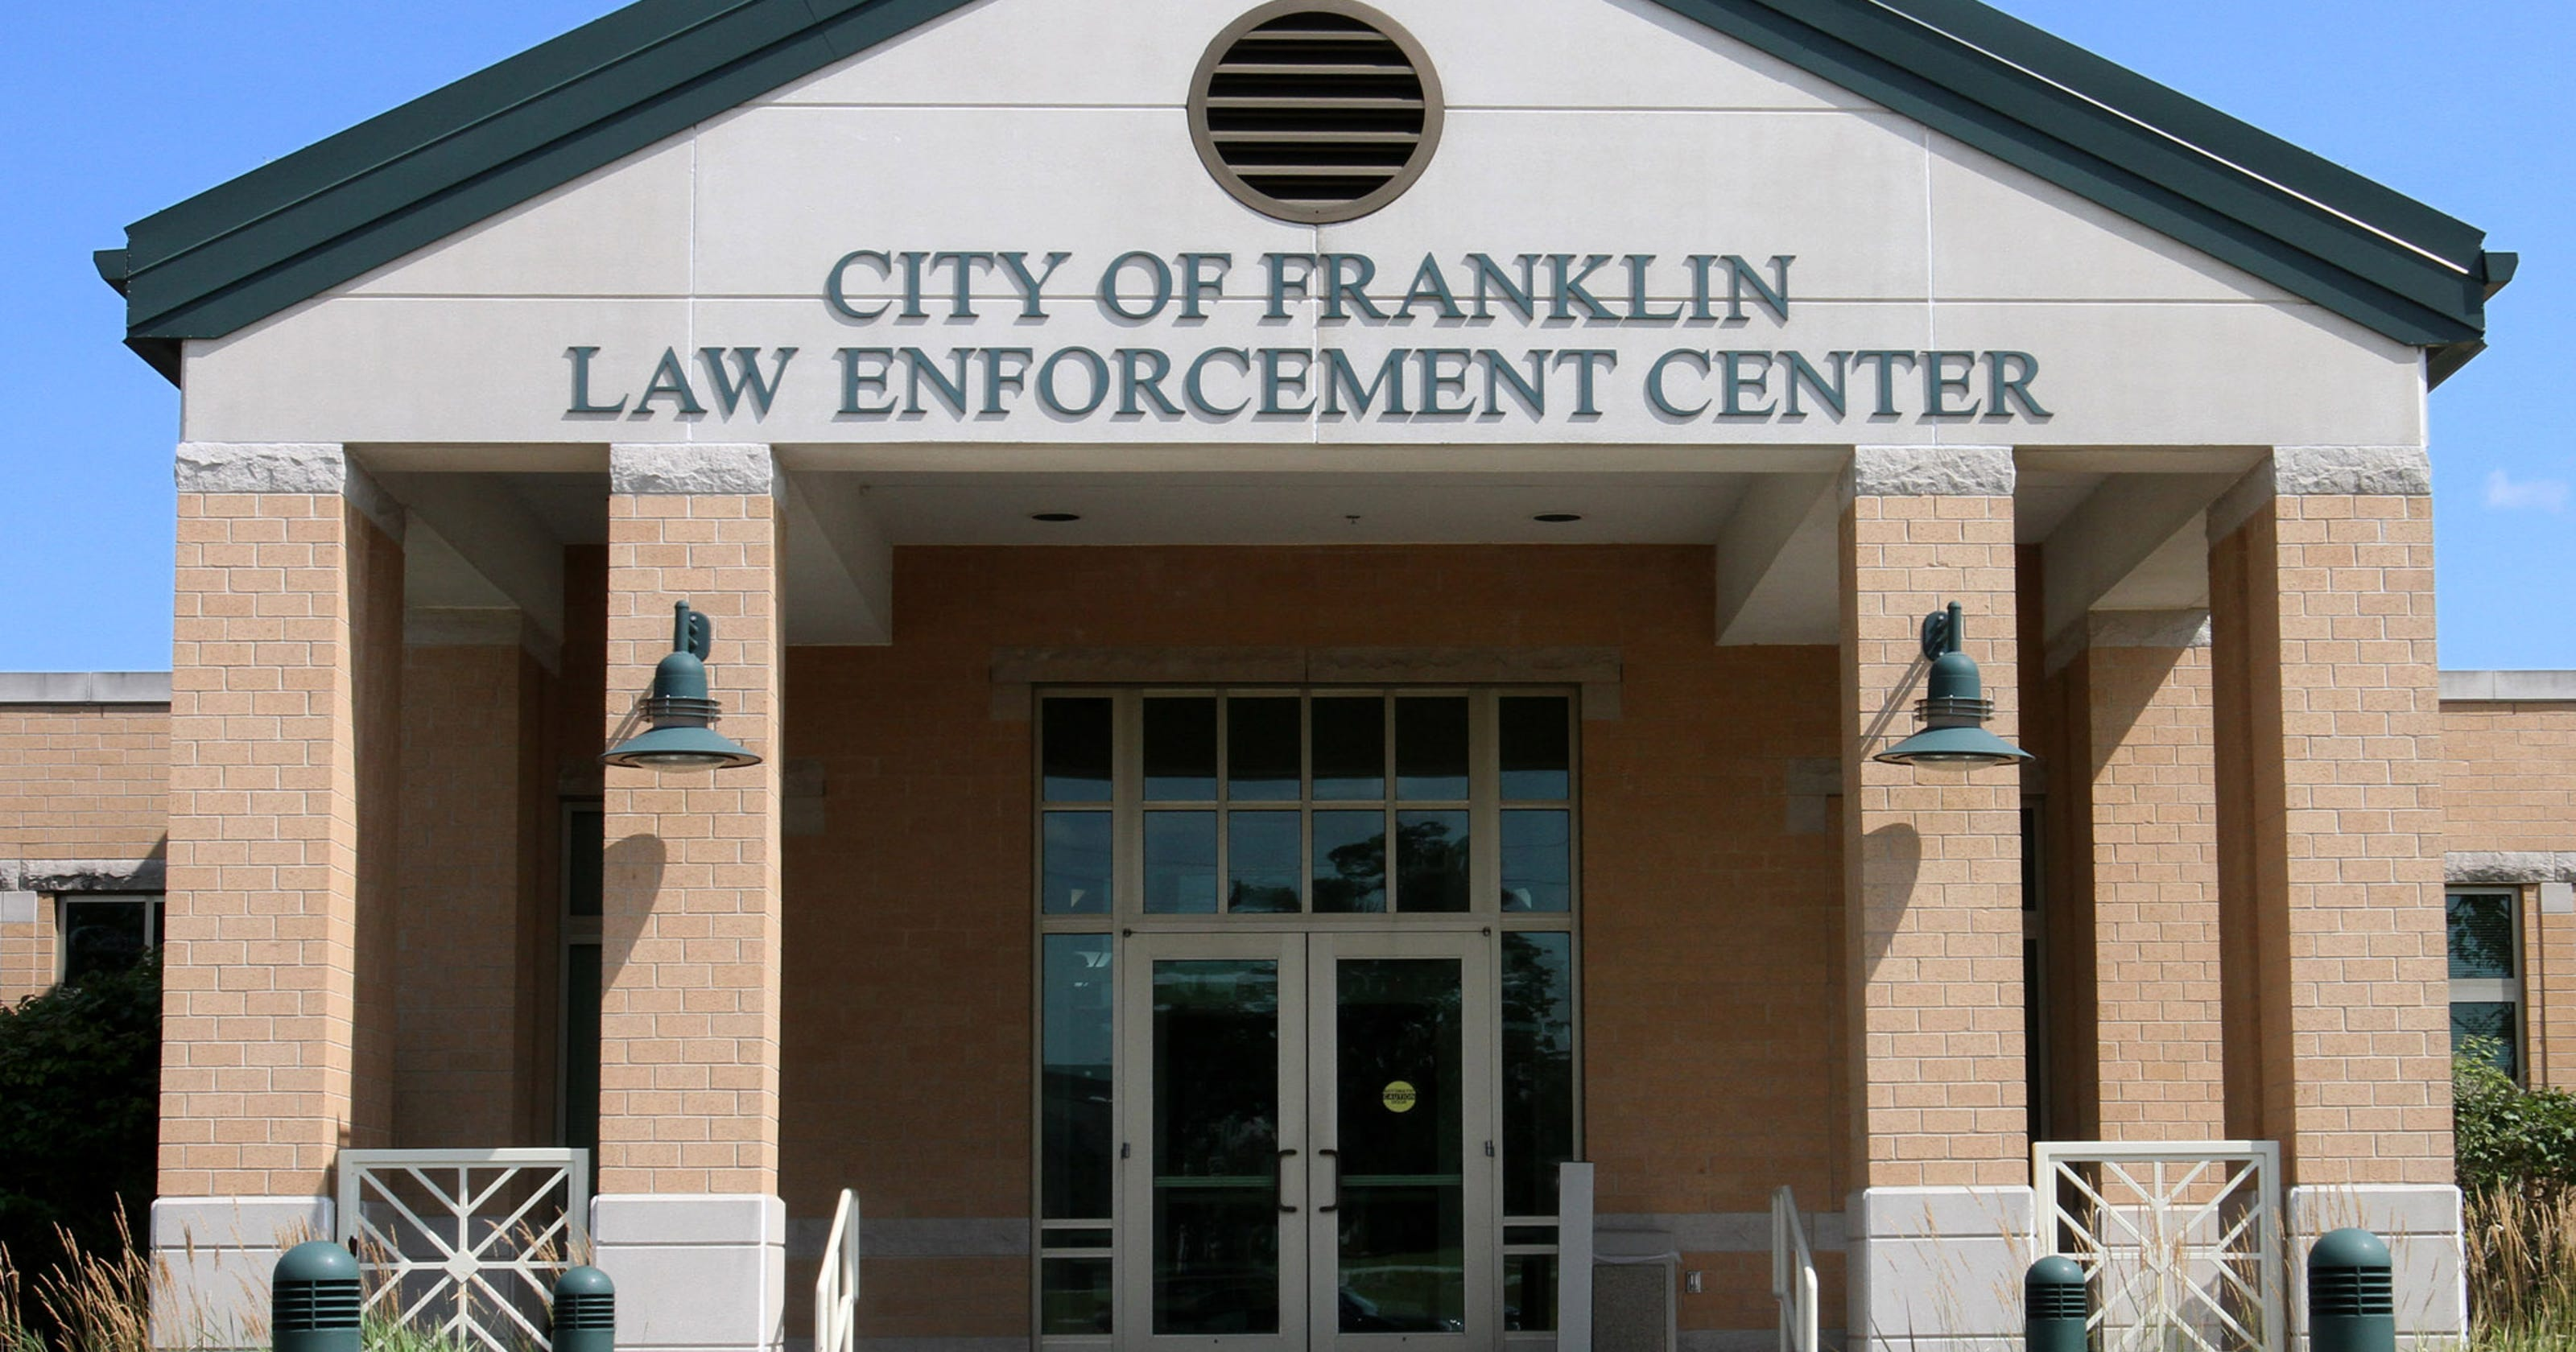 Referendum possible for Franklin emergency services following survey